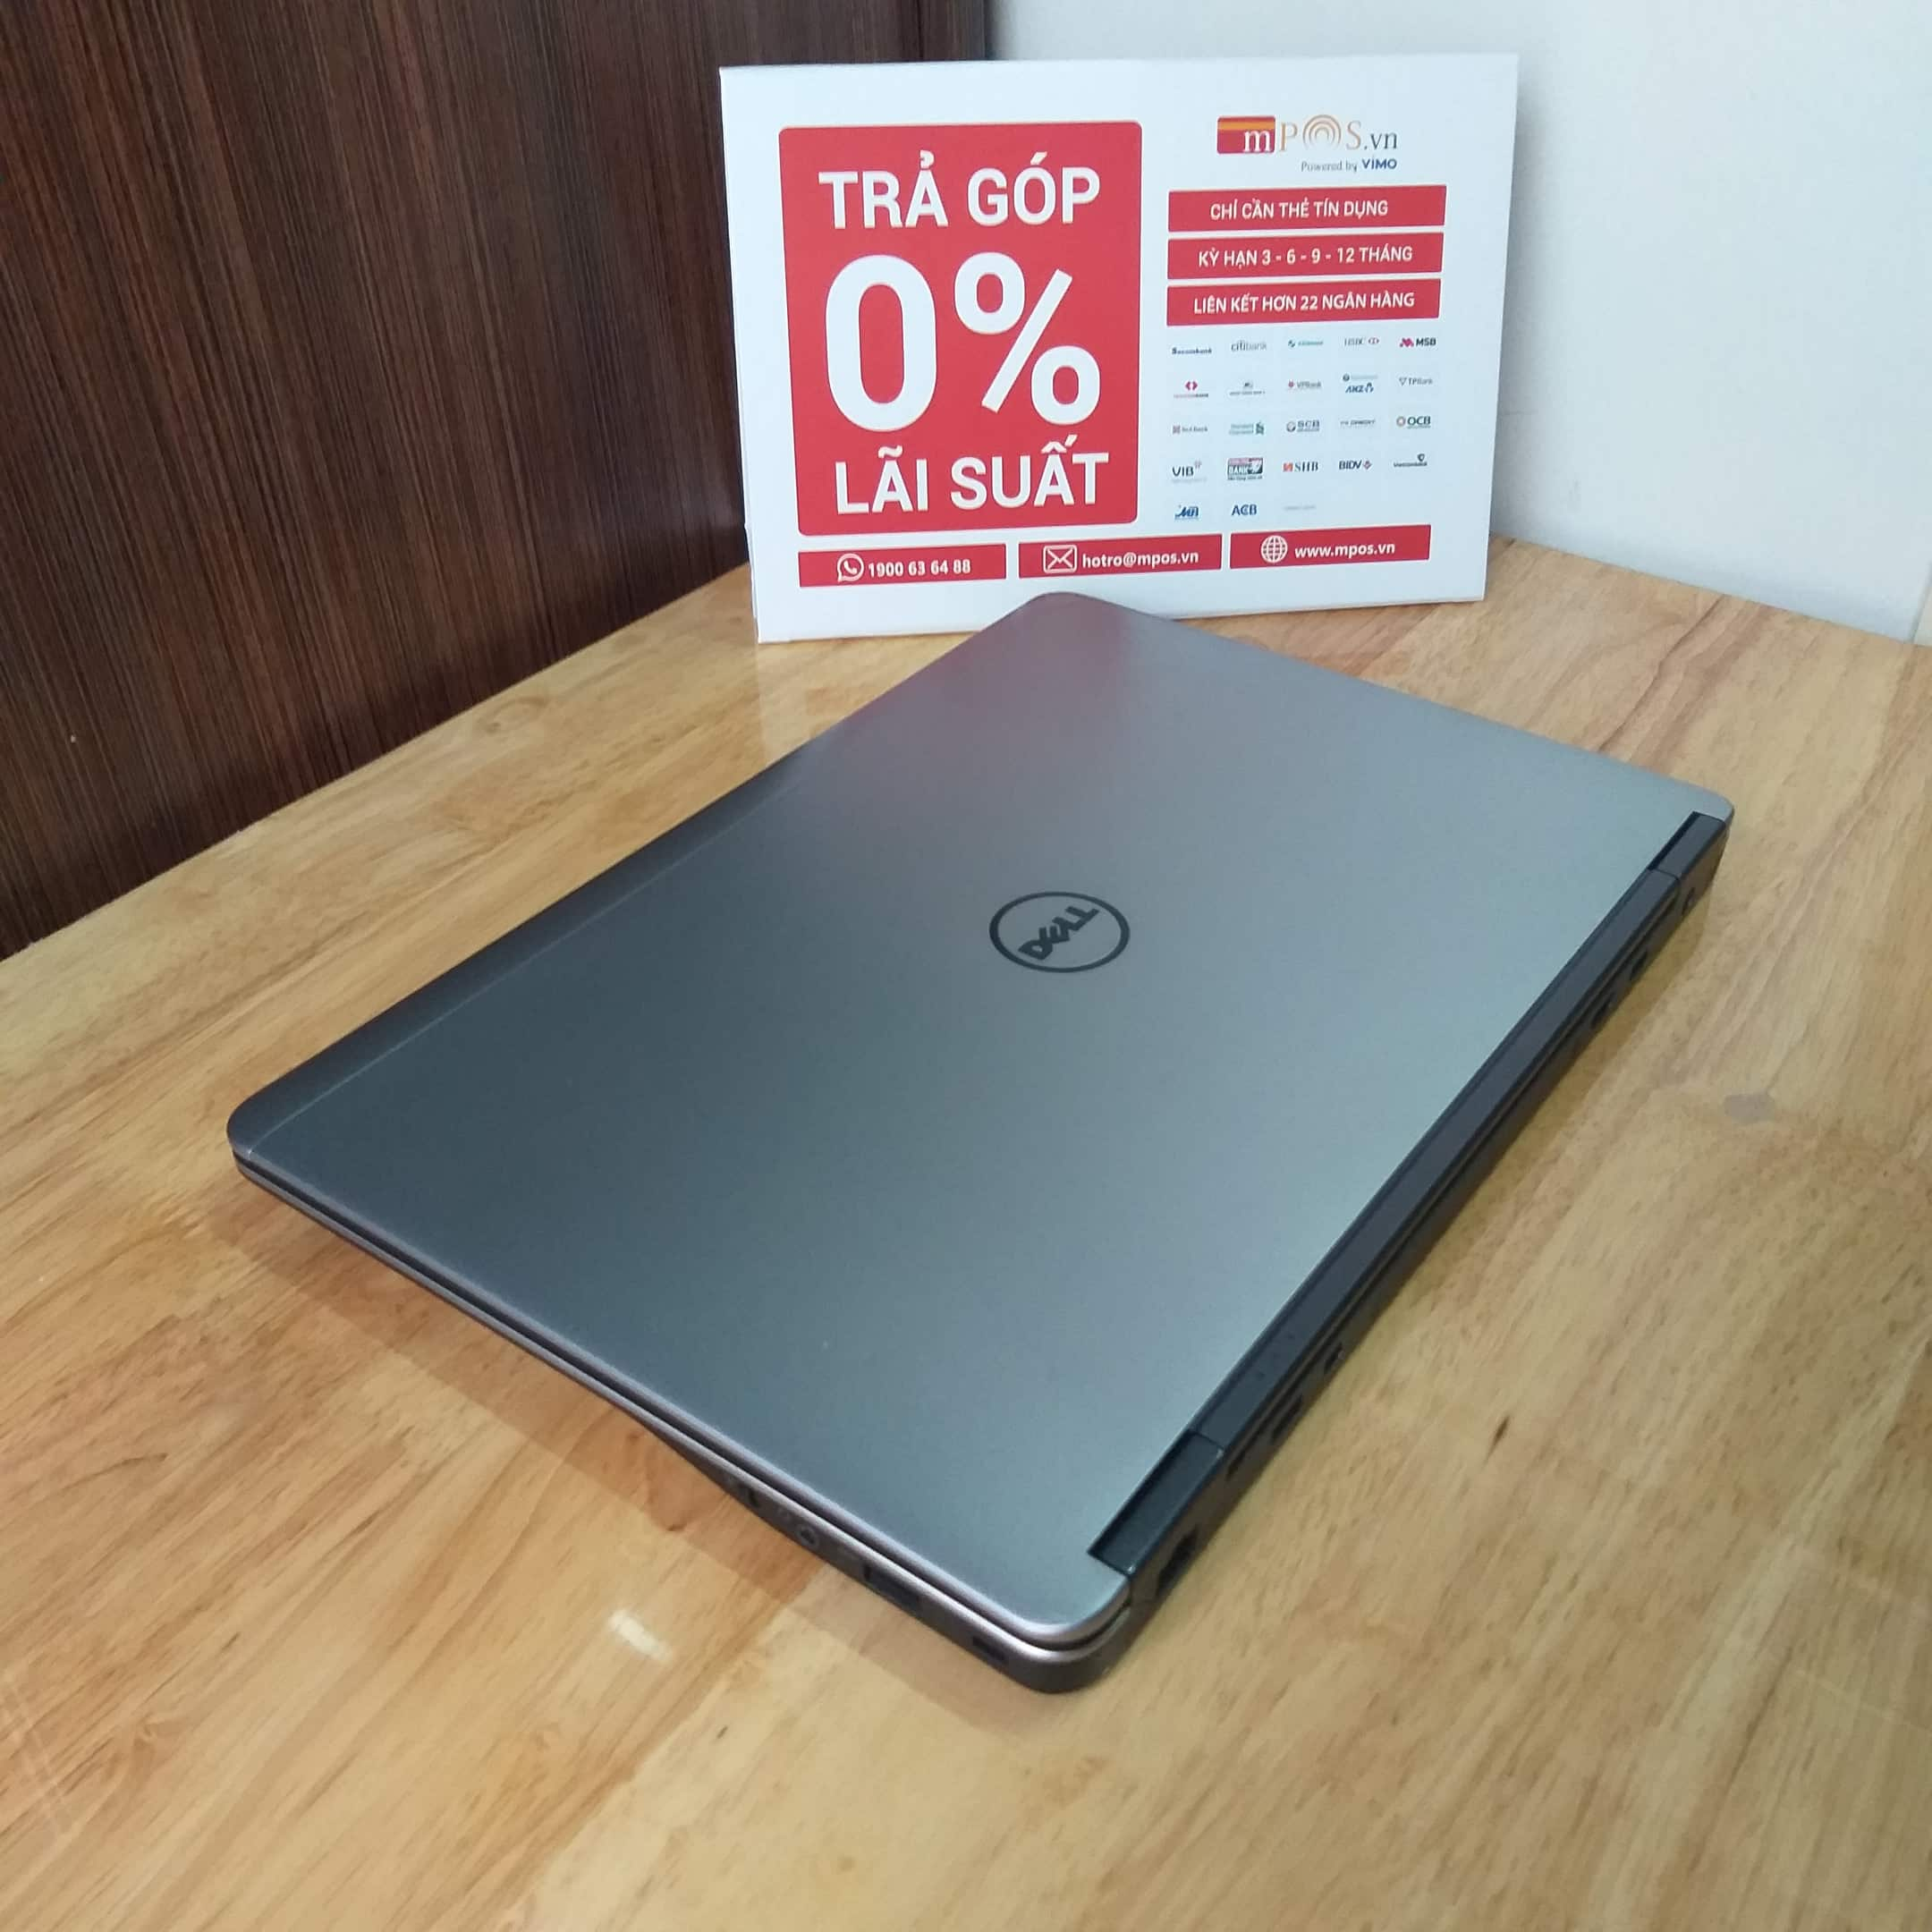 Dell Latitude E7440, I5 4300U RAM 4GB SSD 128GB